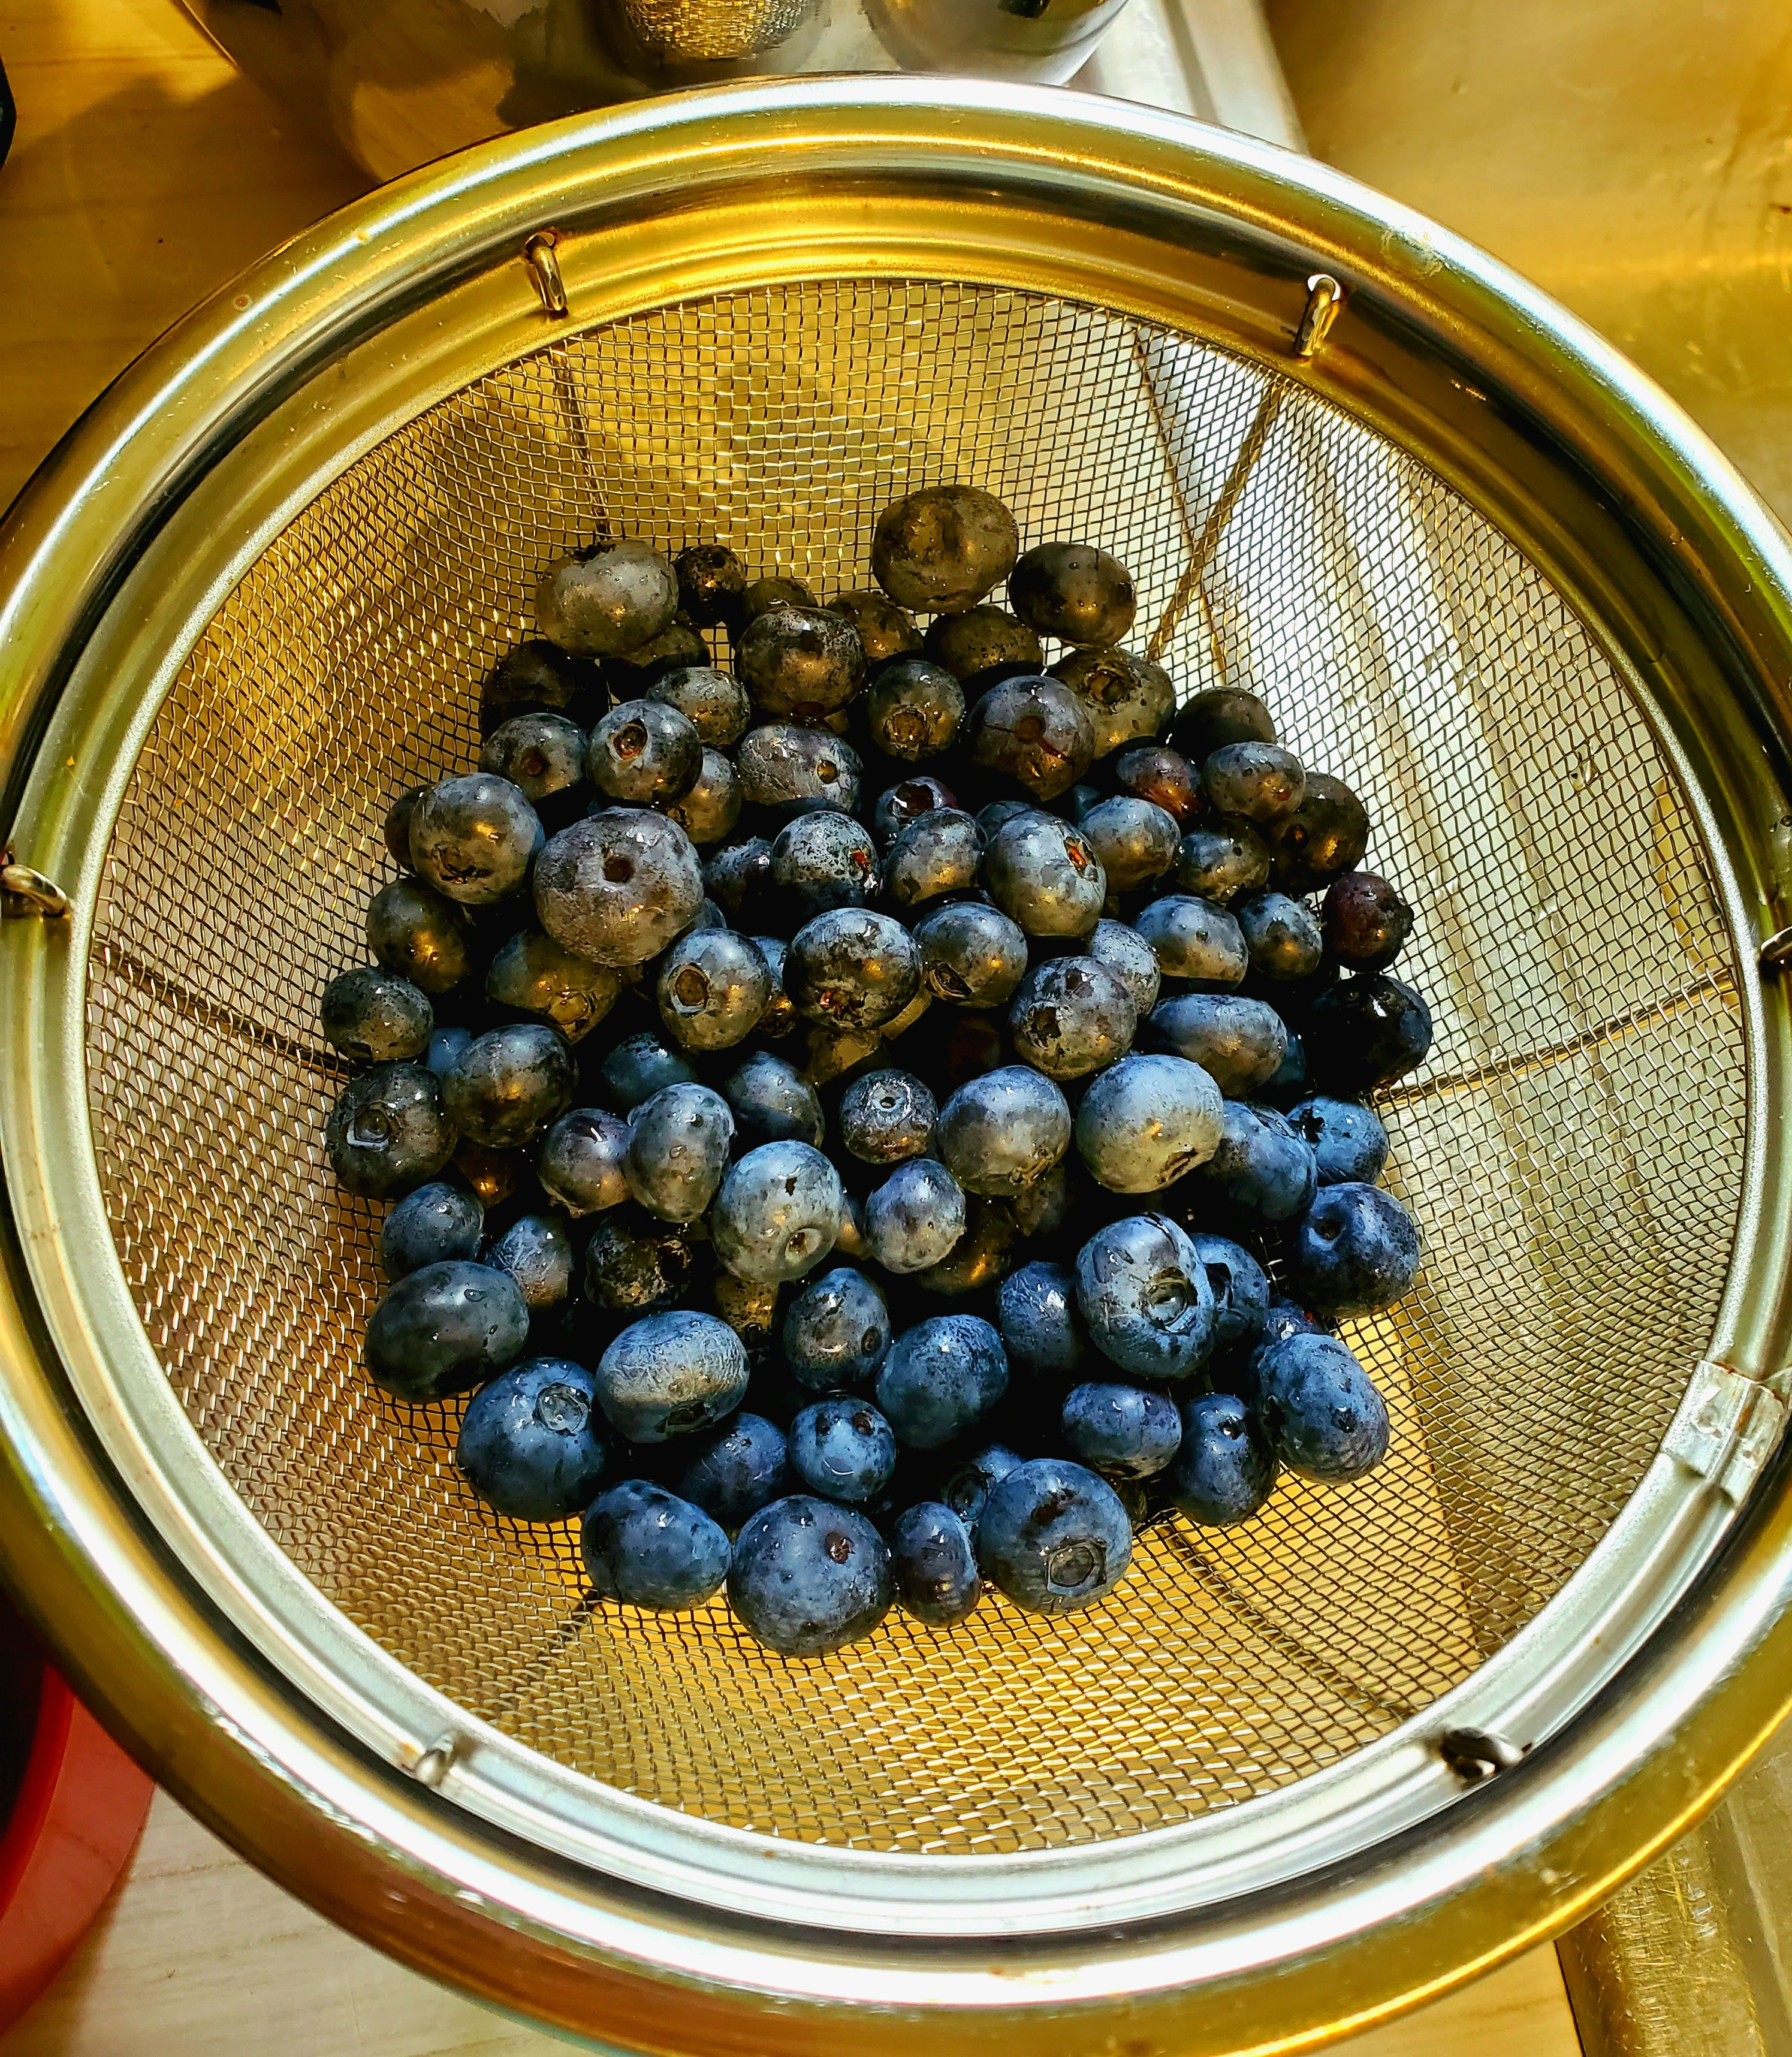 Berries in a colander